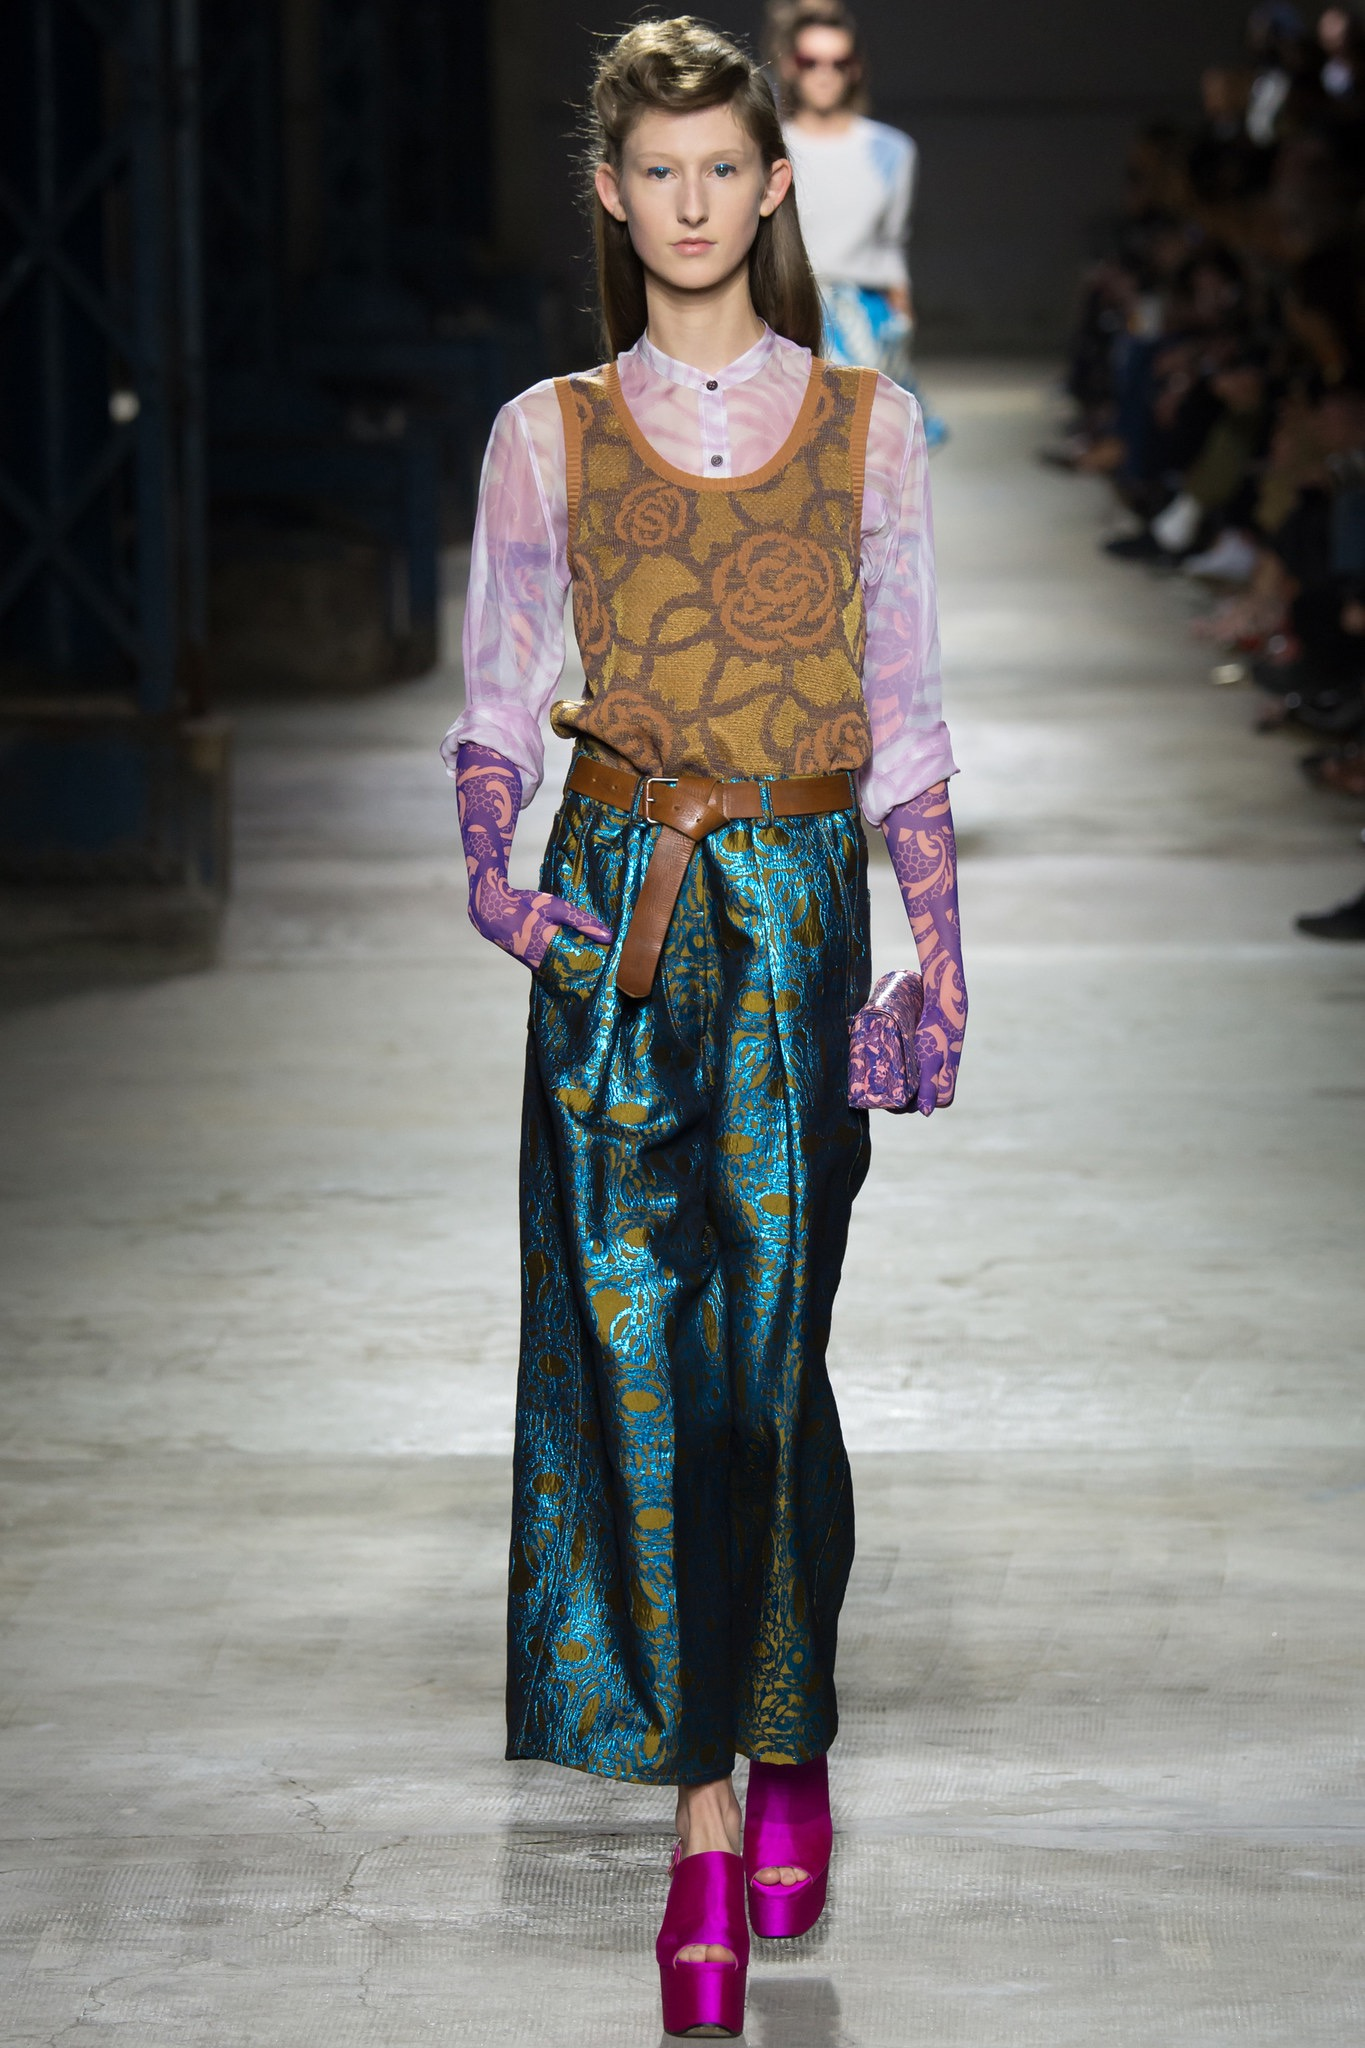 images/cast/20161000030000004=Summer 2016 COLOUR'S COMPANY fabrics x=Dries van Noten